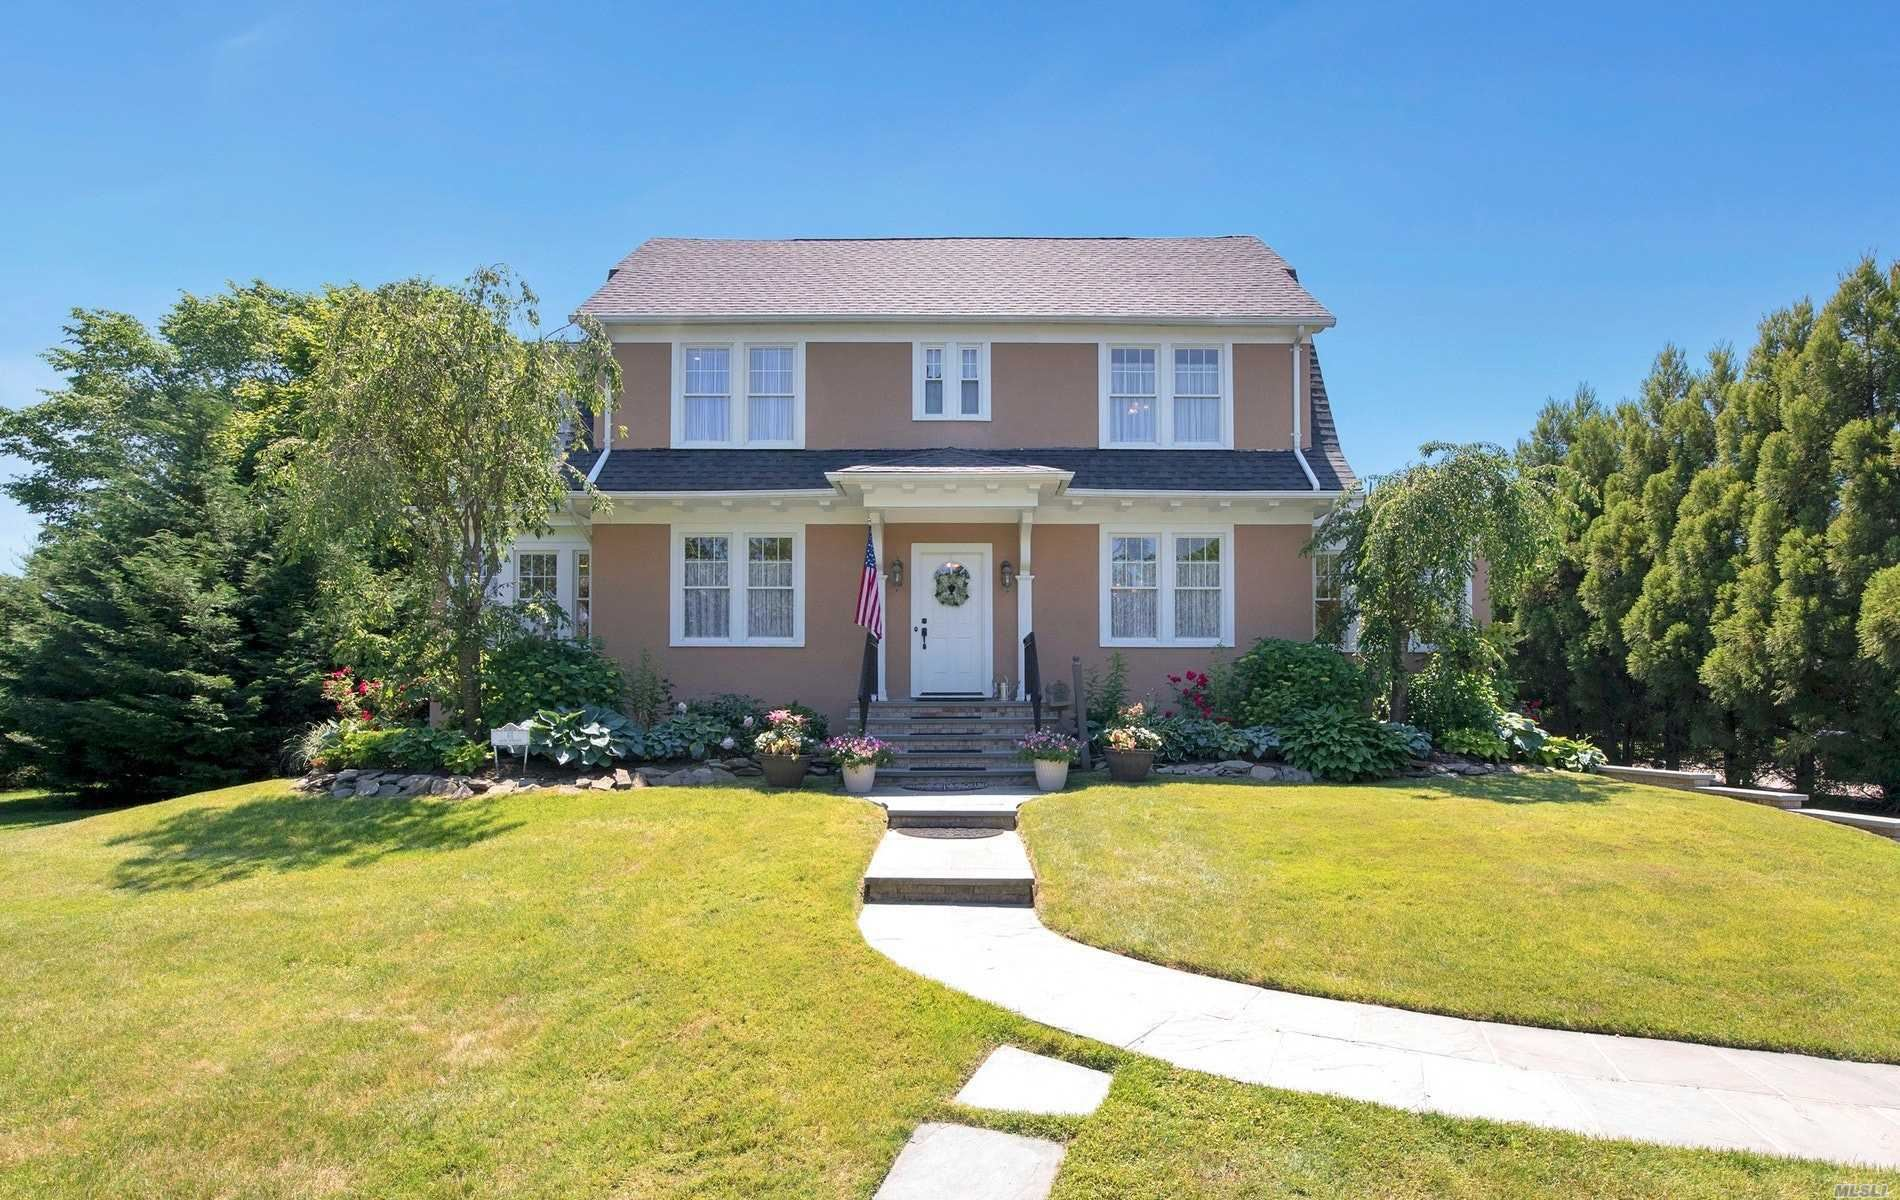 61 S Windsor Avenue, Brightwaters, NY 11718 - MLS#: 3222734